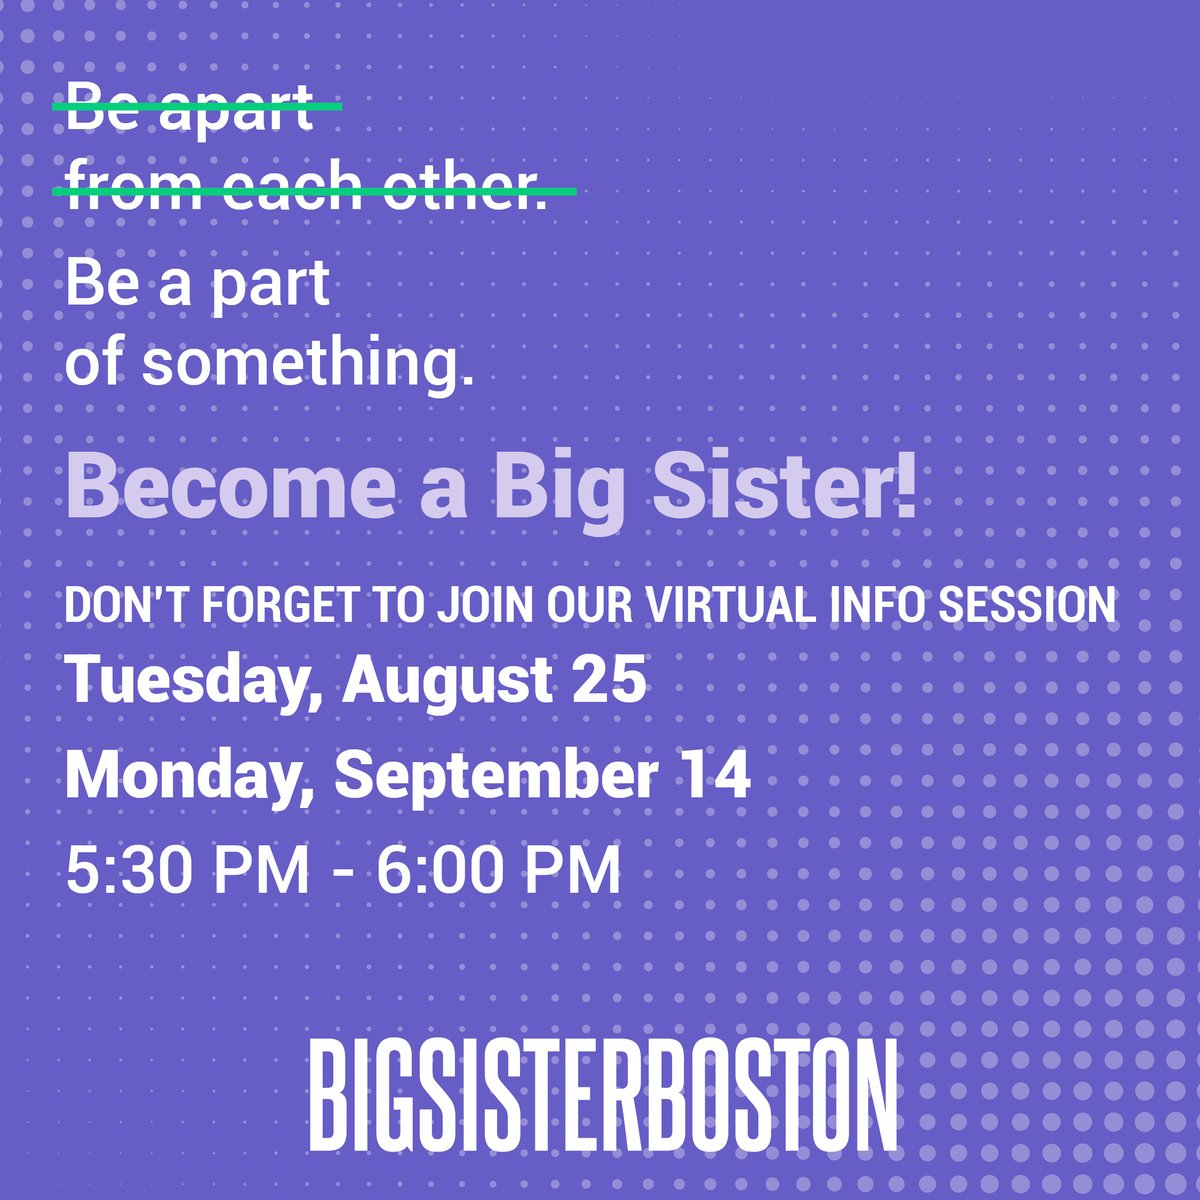 Think you can't be a Big Sister while social distancing? Think again! Join us on 8/25 or 9/14 at 5:30 PM to learn how you can ignite the passion and power of young girls in the Greater Boston area, virtually! Register at:https://t.co/foijBtj2YO https://t.co/5B059QJ9UV